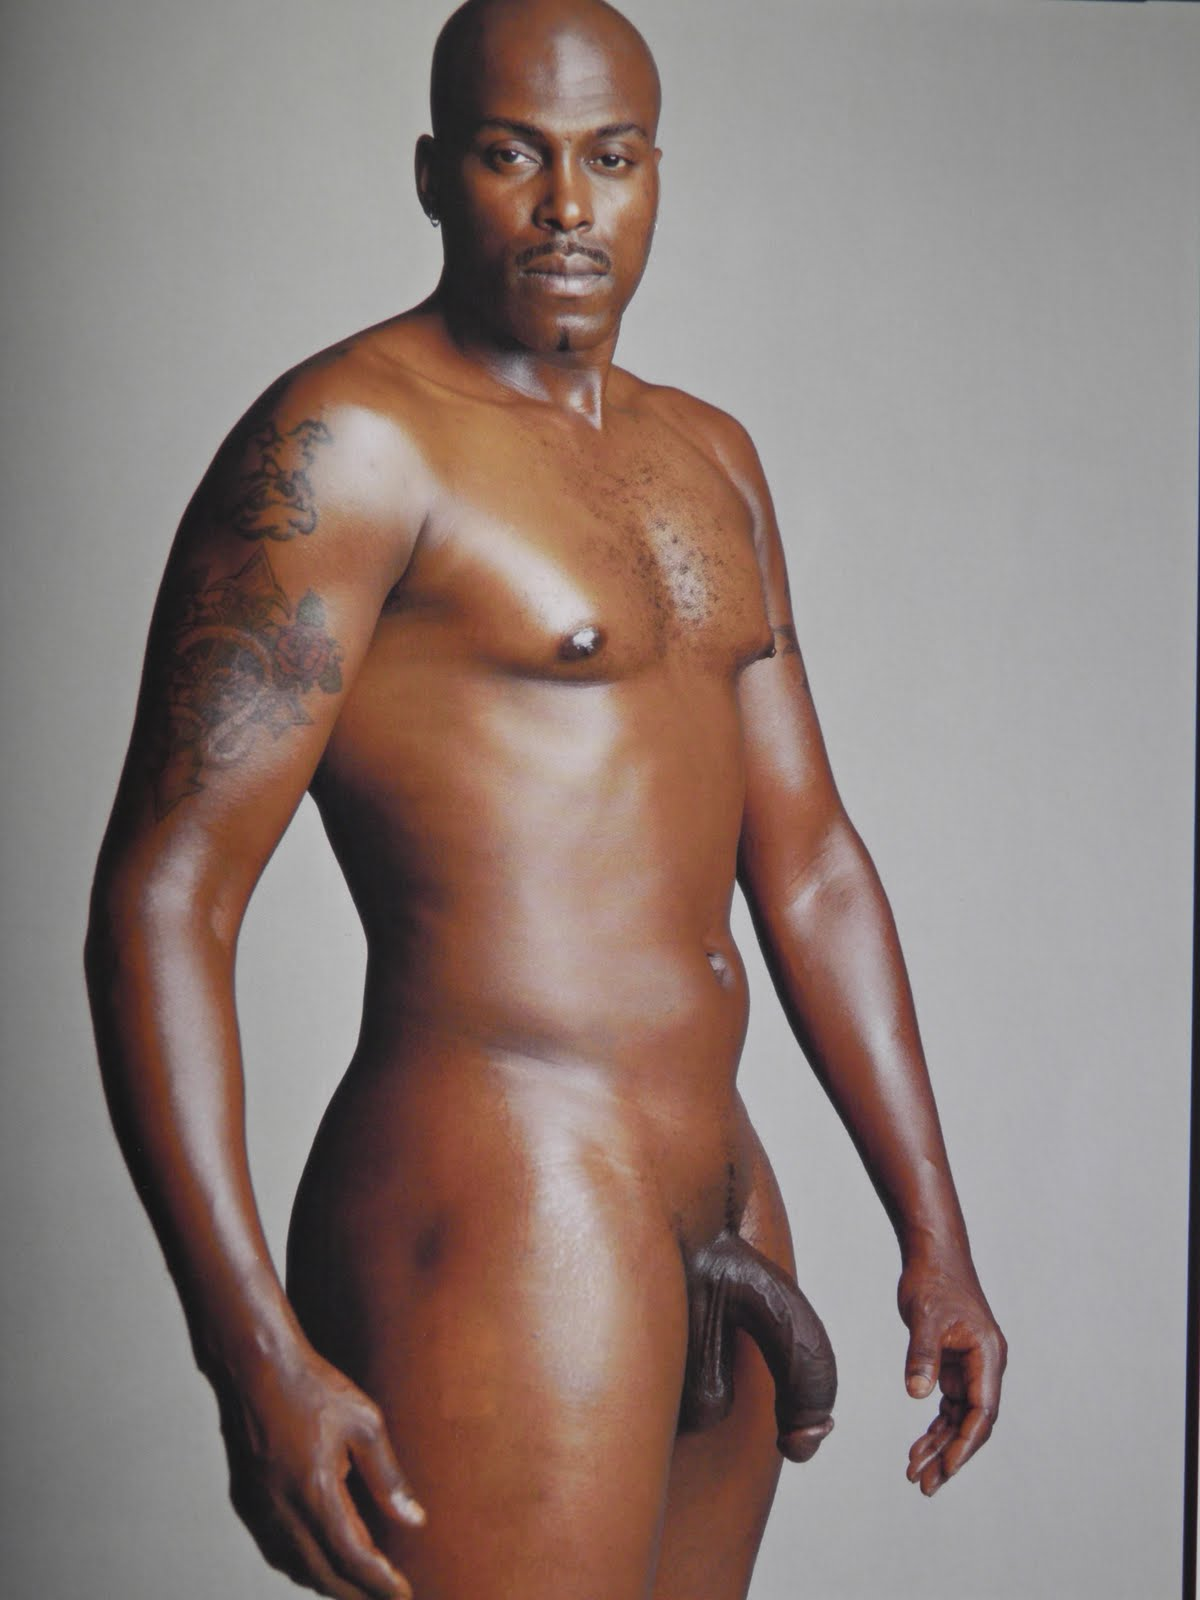 Male Celebs With Nudes